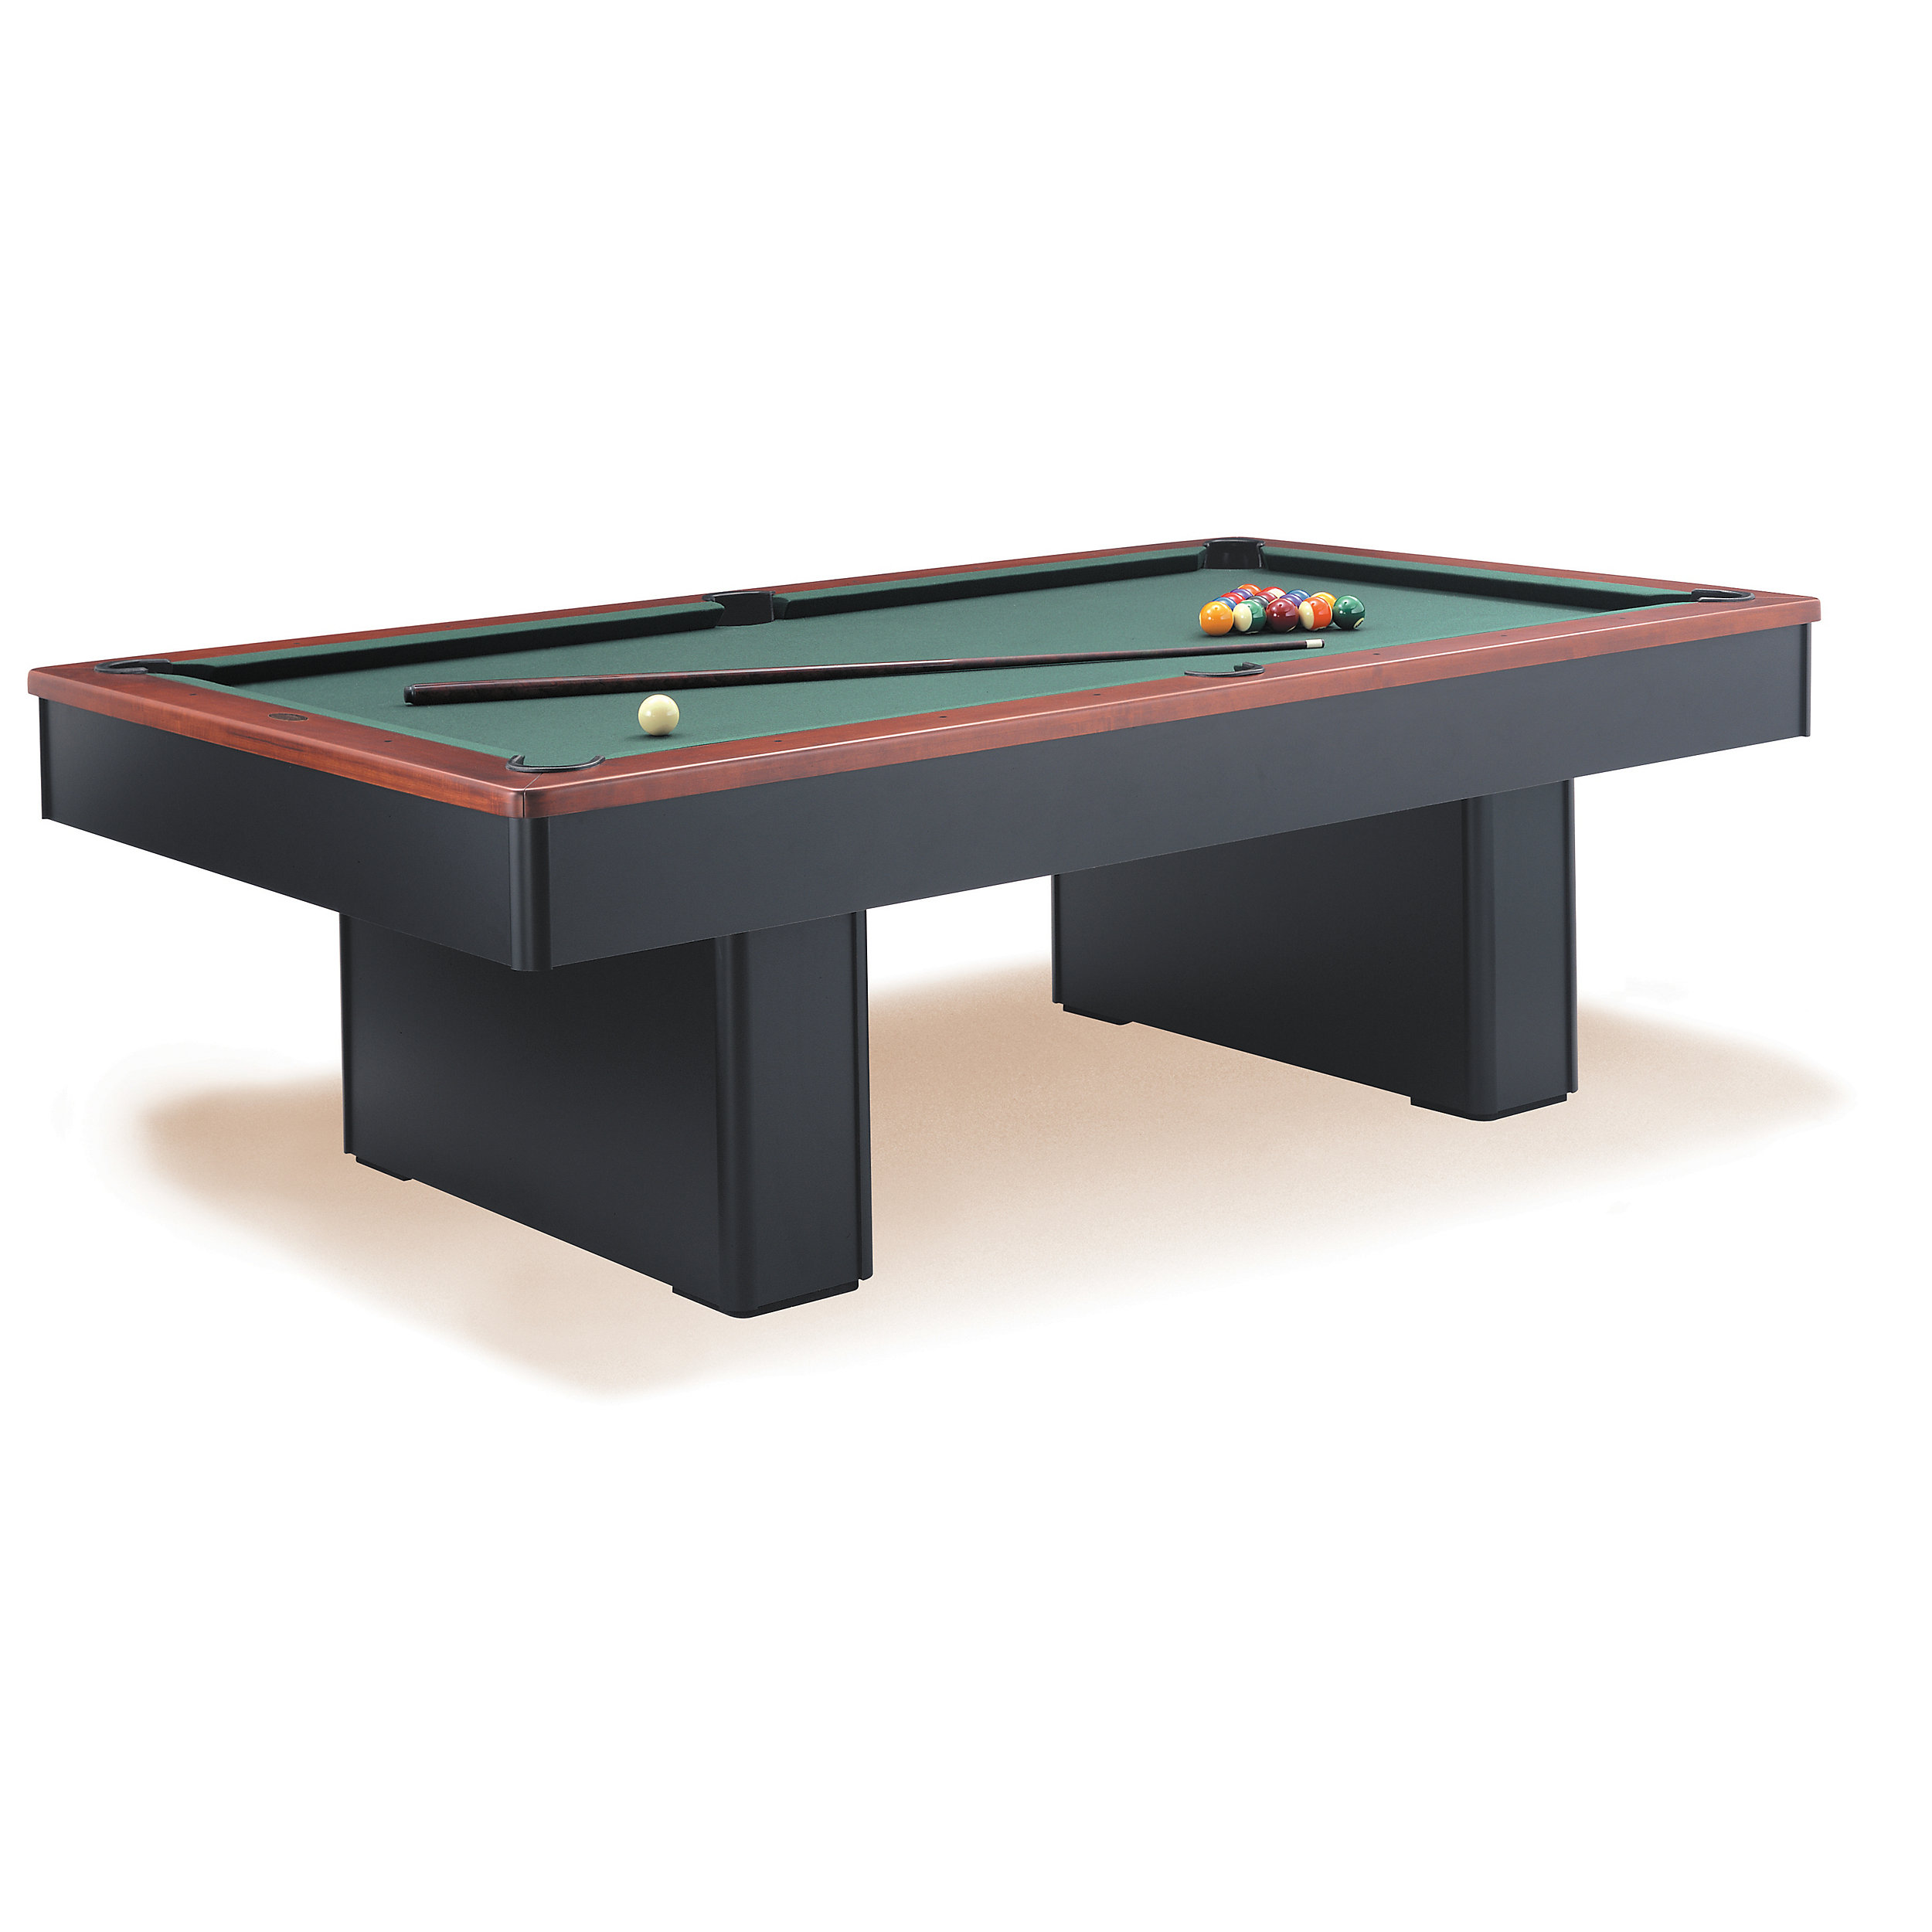 products crum tables lynne billiards pa americana ebonite monarch olhausen img table ii black pool